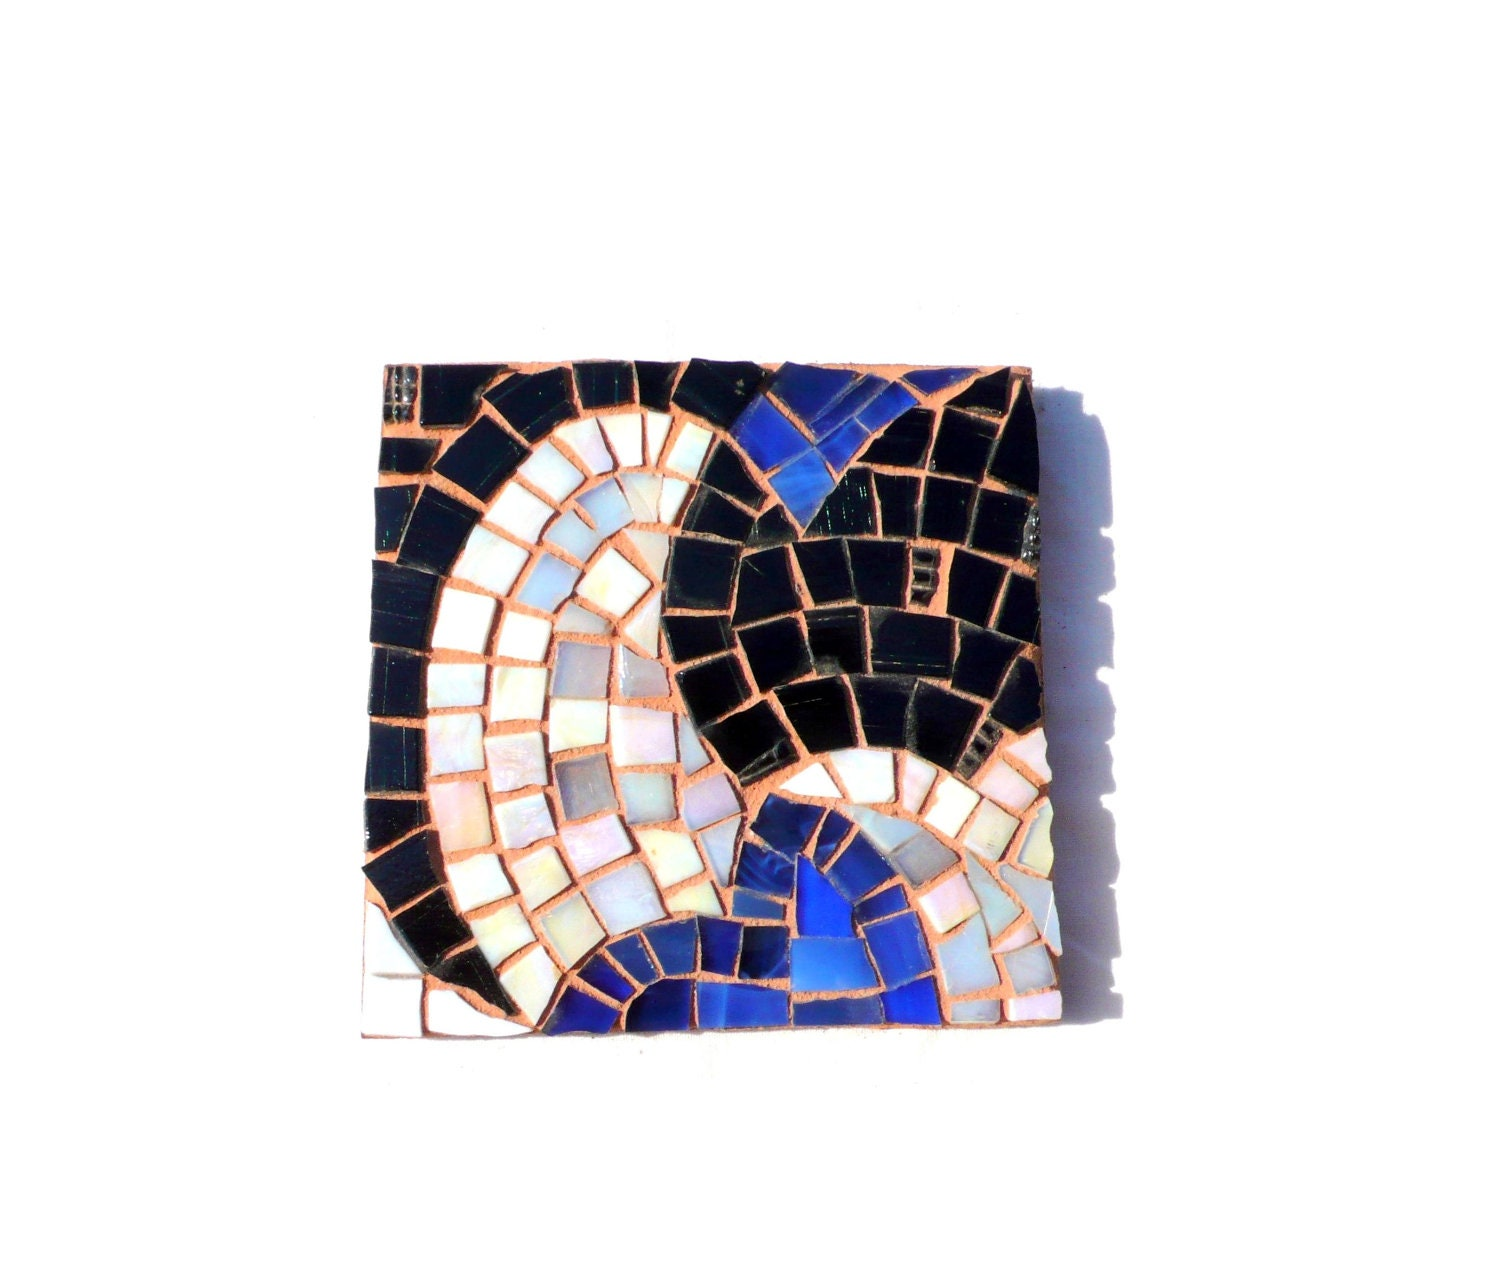 blue, white, black art glass mosaic coaster abstract MADE TO ORDER - LaTenagliaImpazzita